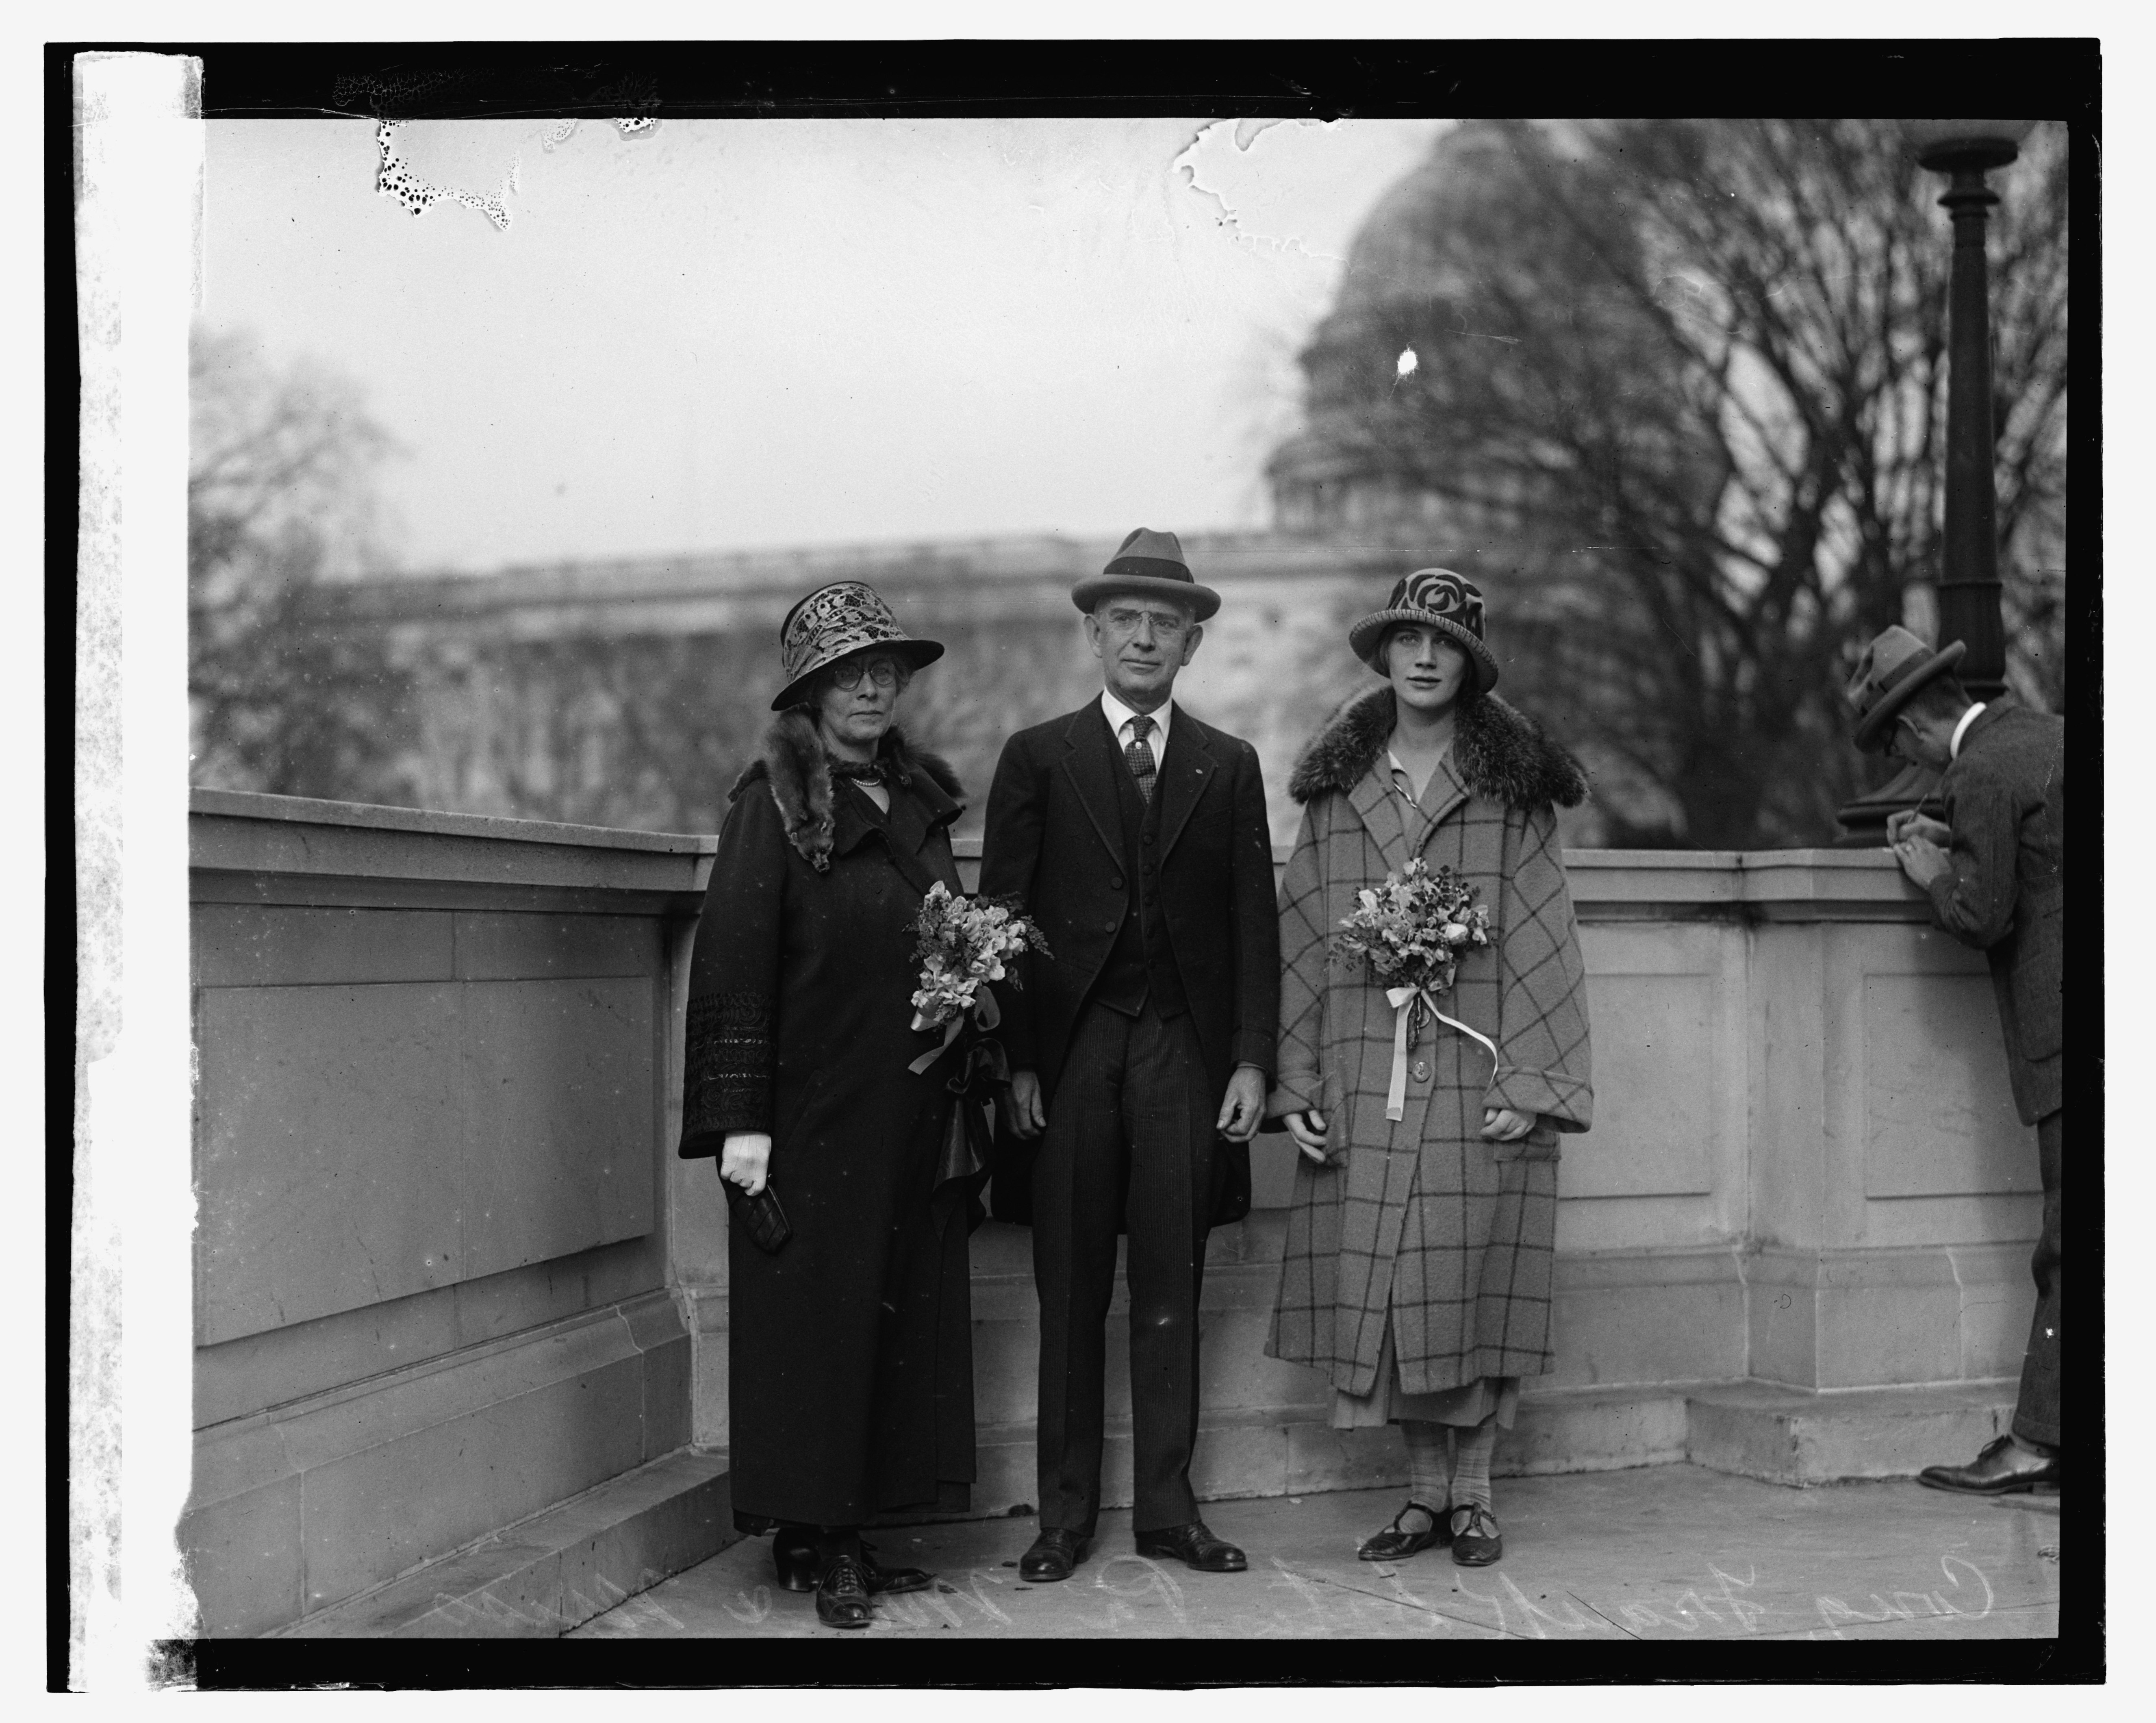 Cong. Sites & family, 12-7-23 LOC npcc.10033.jpg English: Title: Cong. Sites & family, 12/7/23 Abstract/medium: National Photo Company Collection